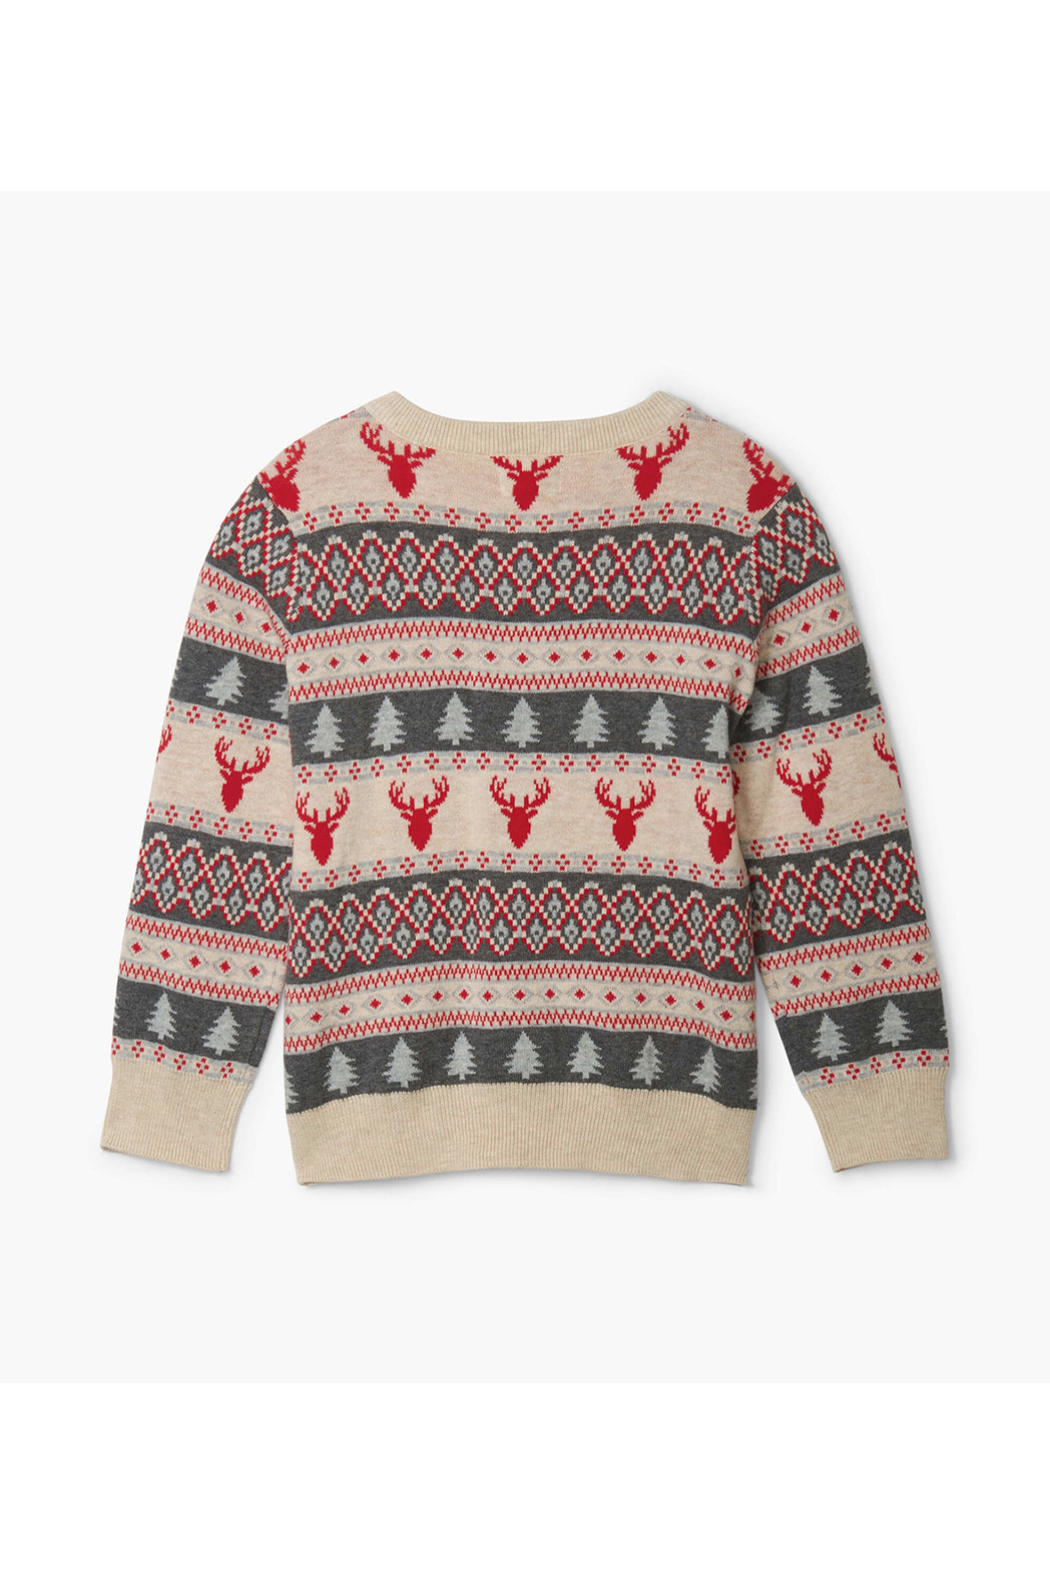 Hatley Fair Isle Stag V-Neck Sweater - Front Full Image